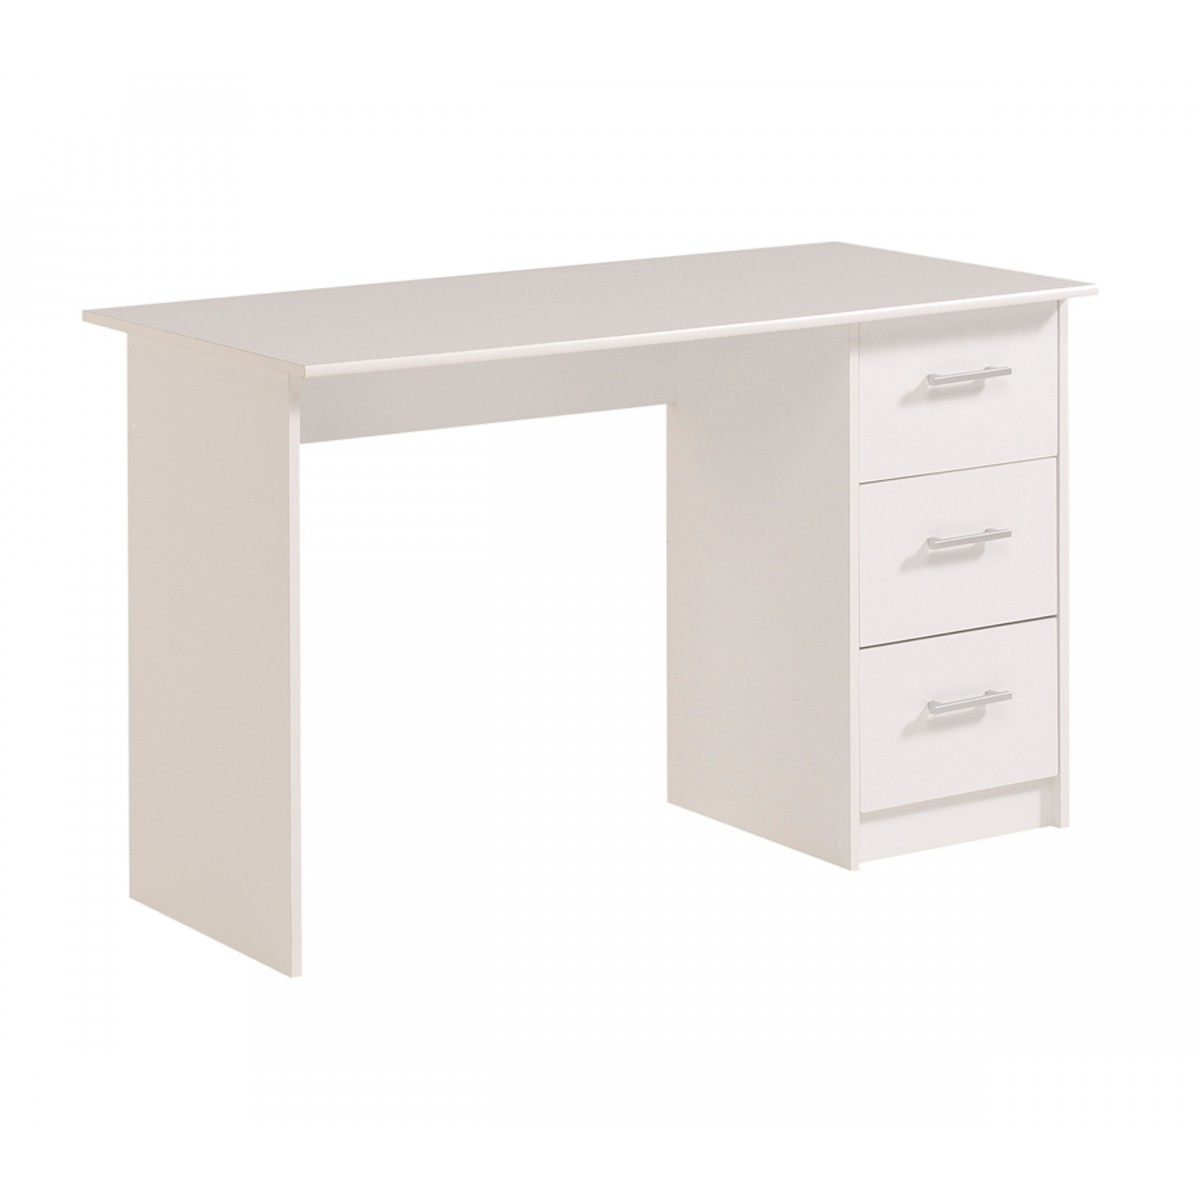 Someo bureau en bois blanc m g ve june - Comparateur de bureau de change ...